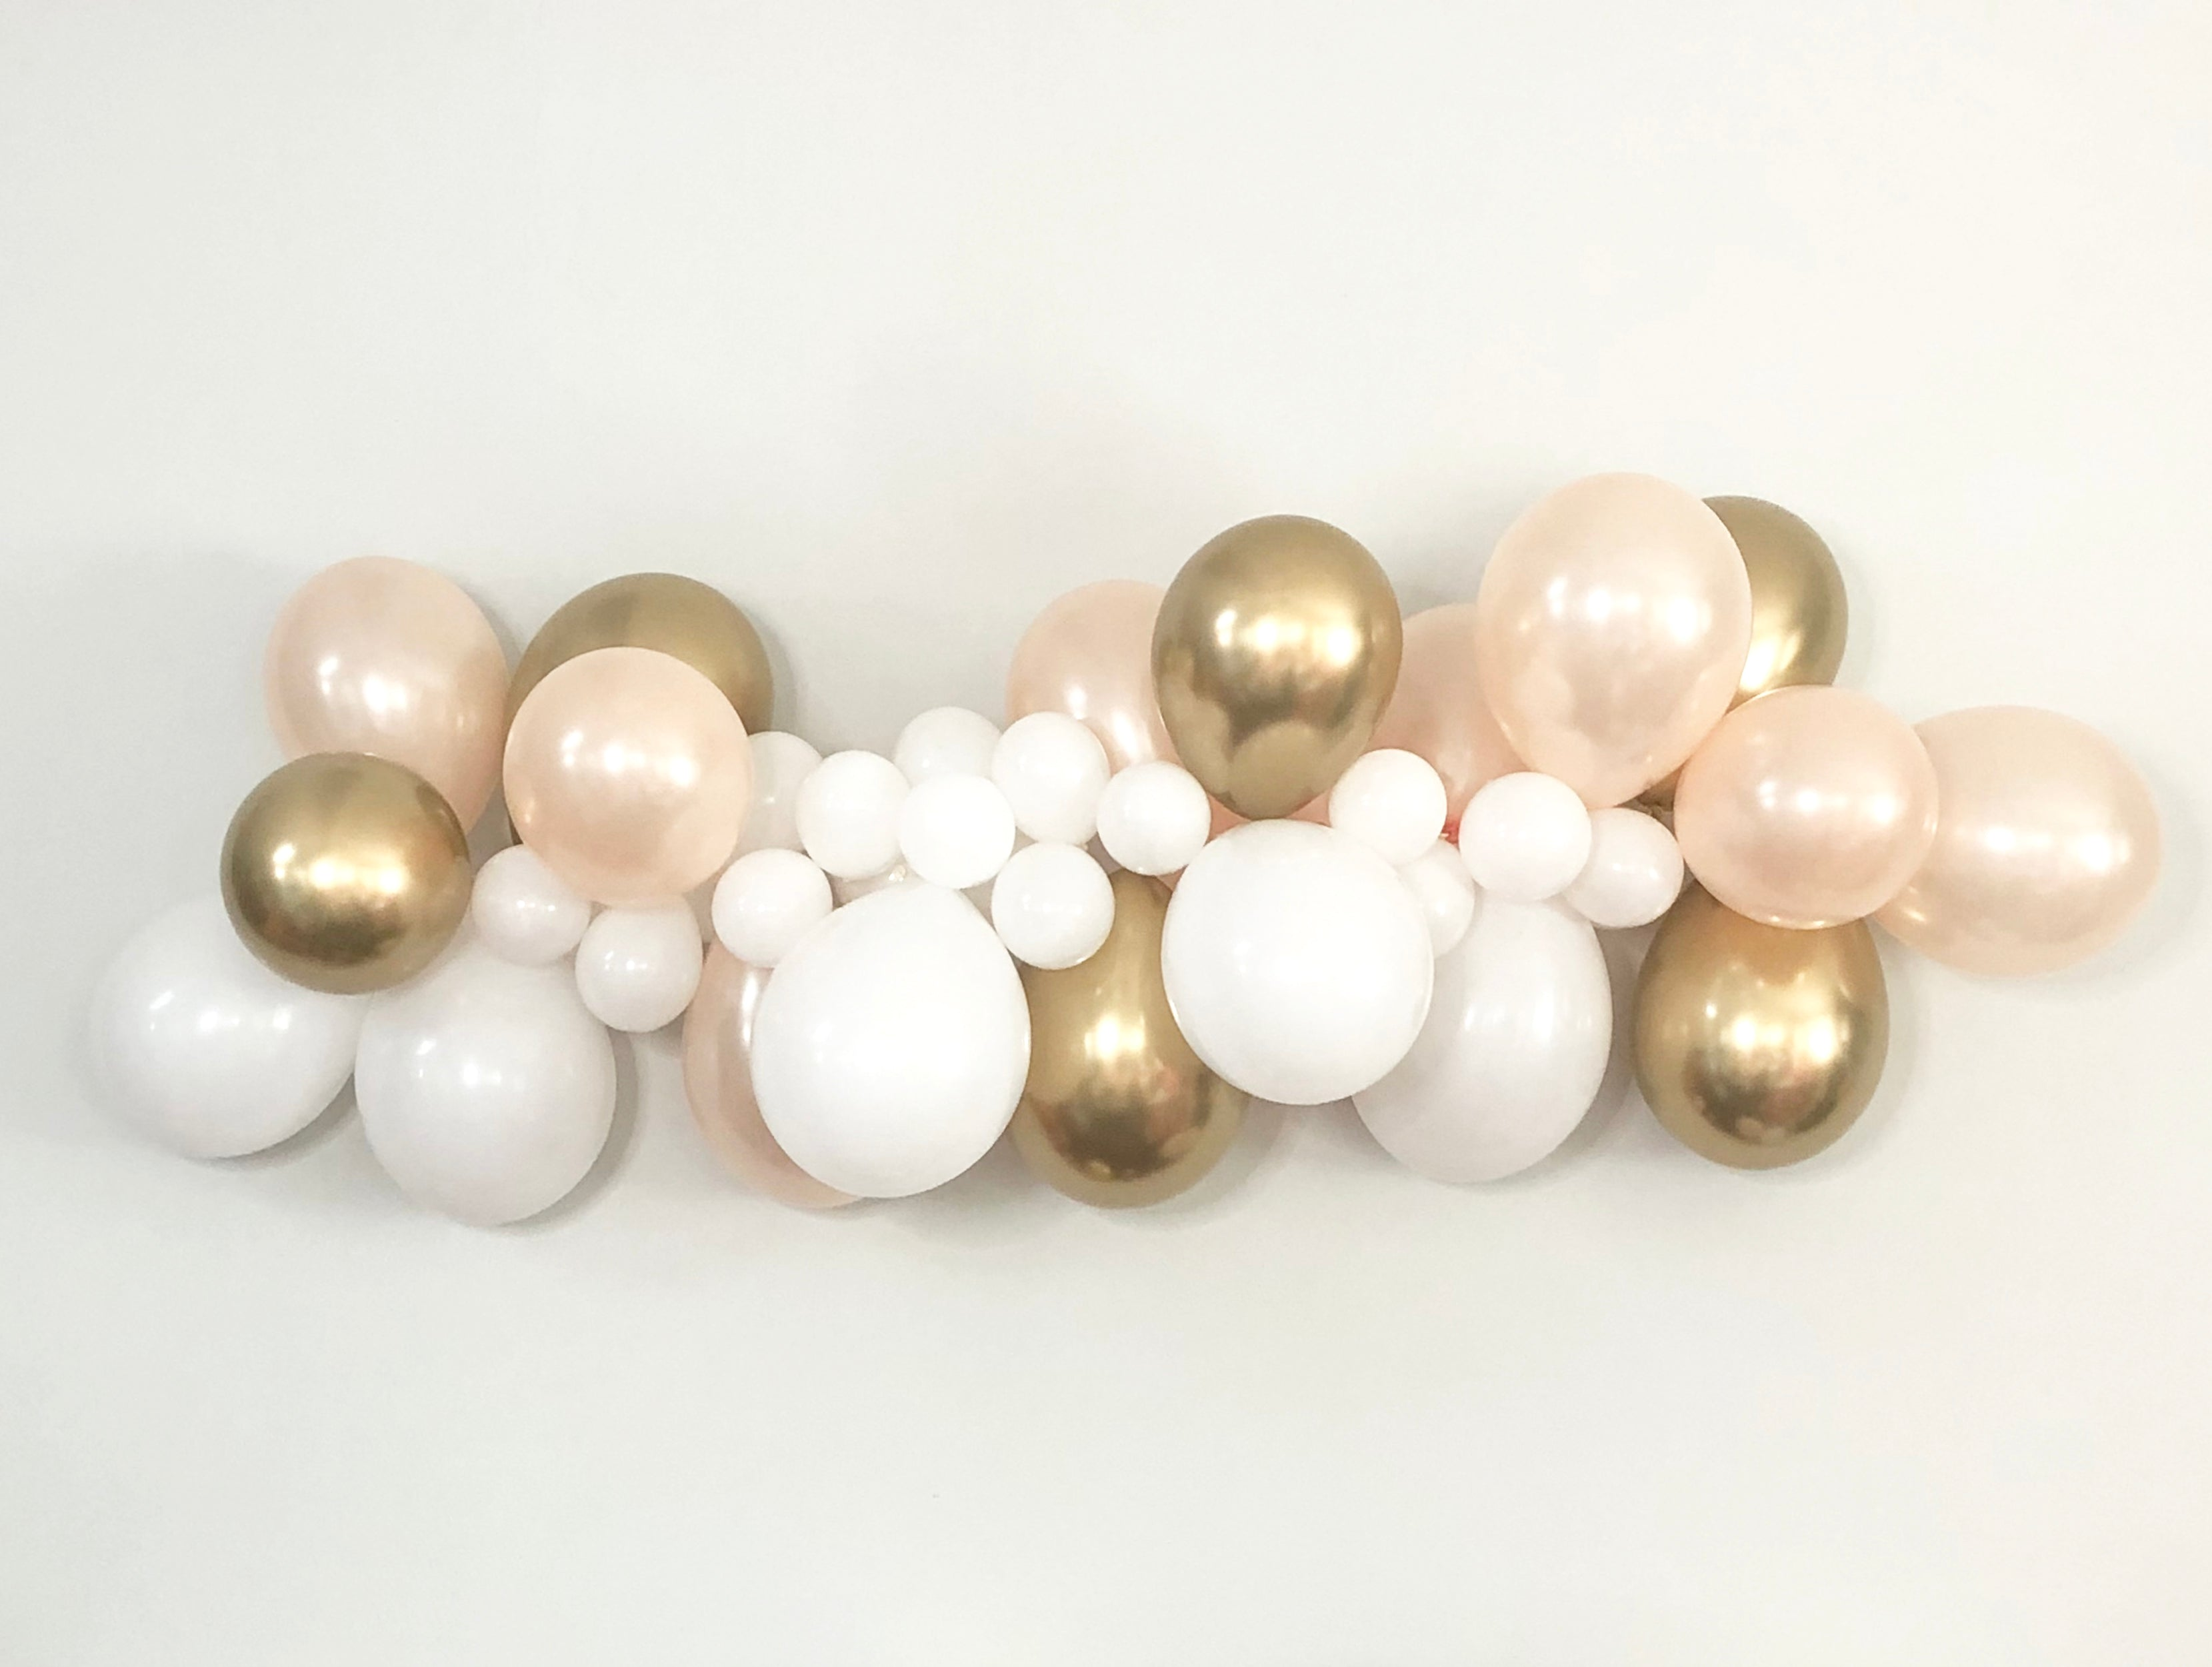 DIY Balloon Garland - Balloon Decorations - Gold Balloon Garland - Pretty Collected